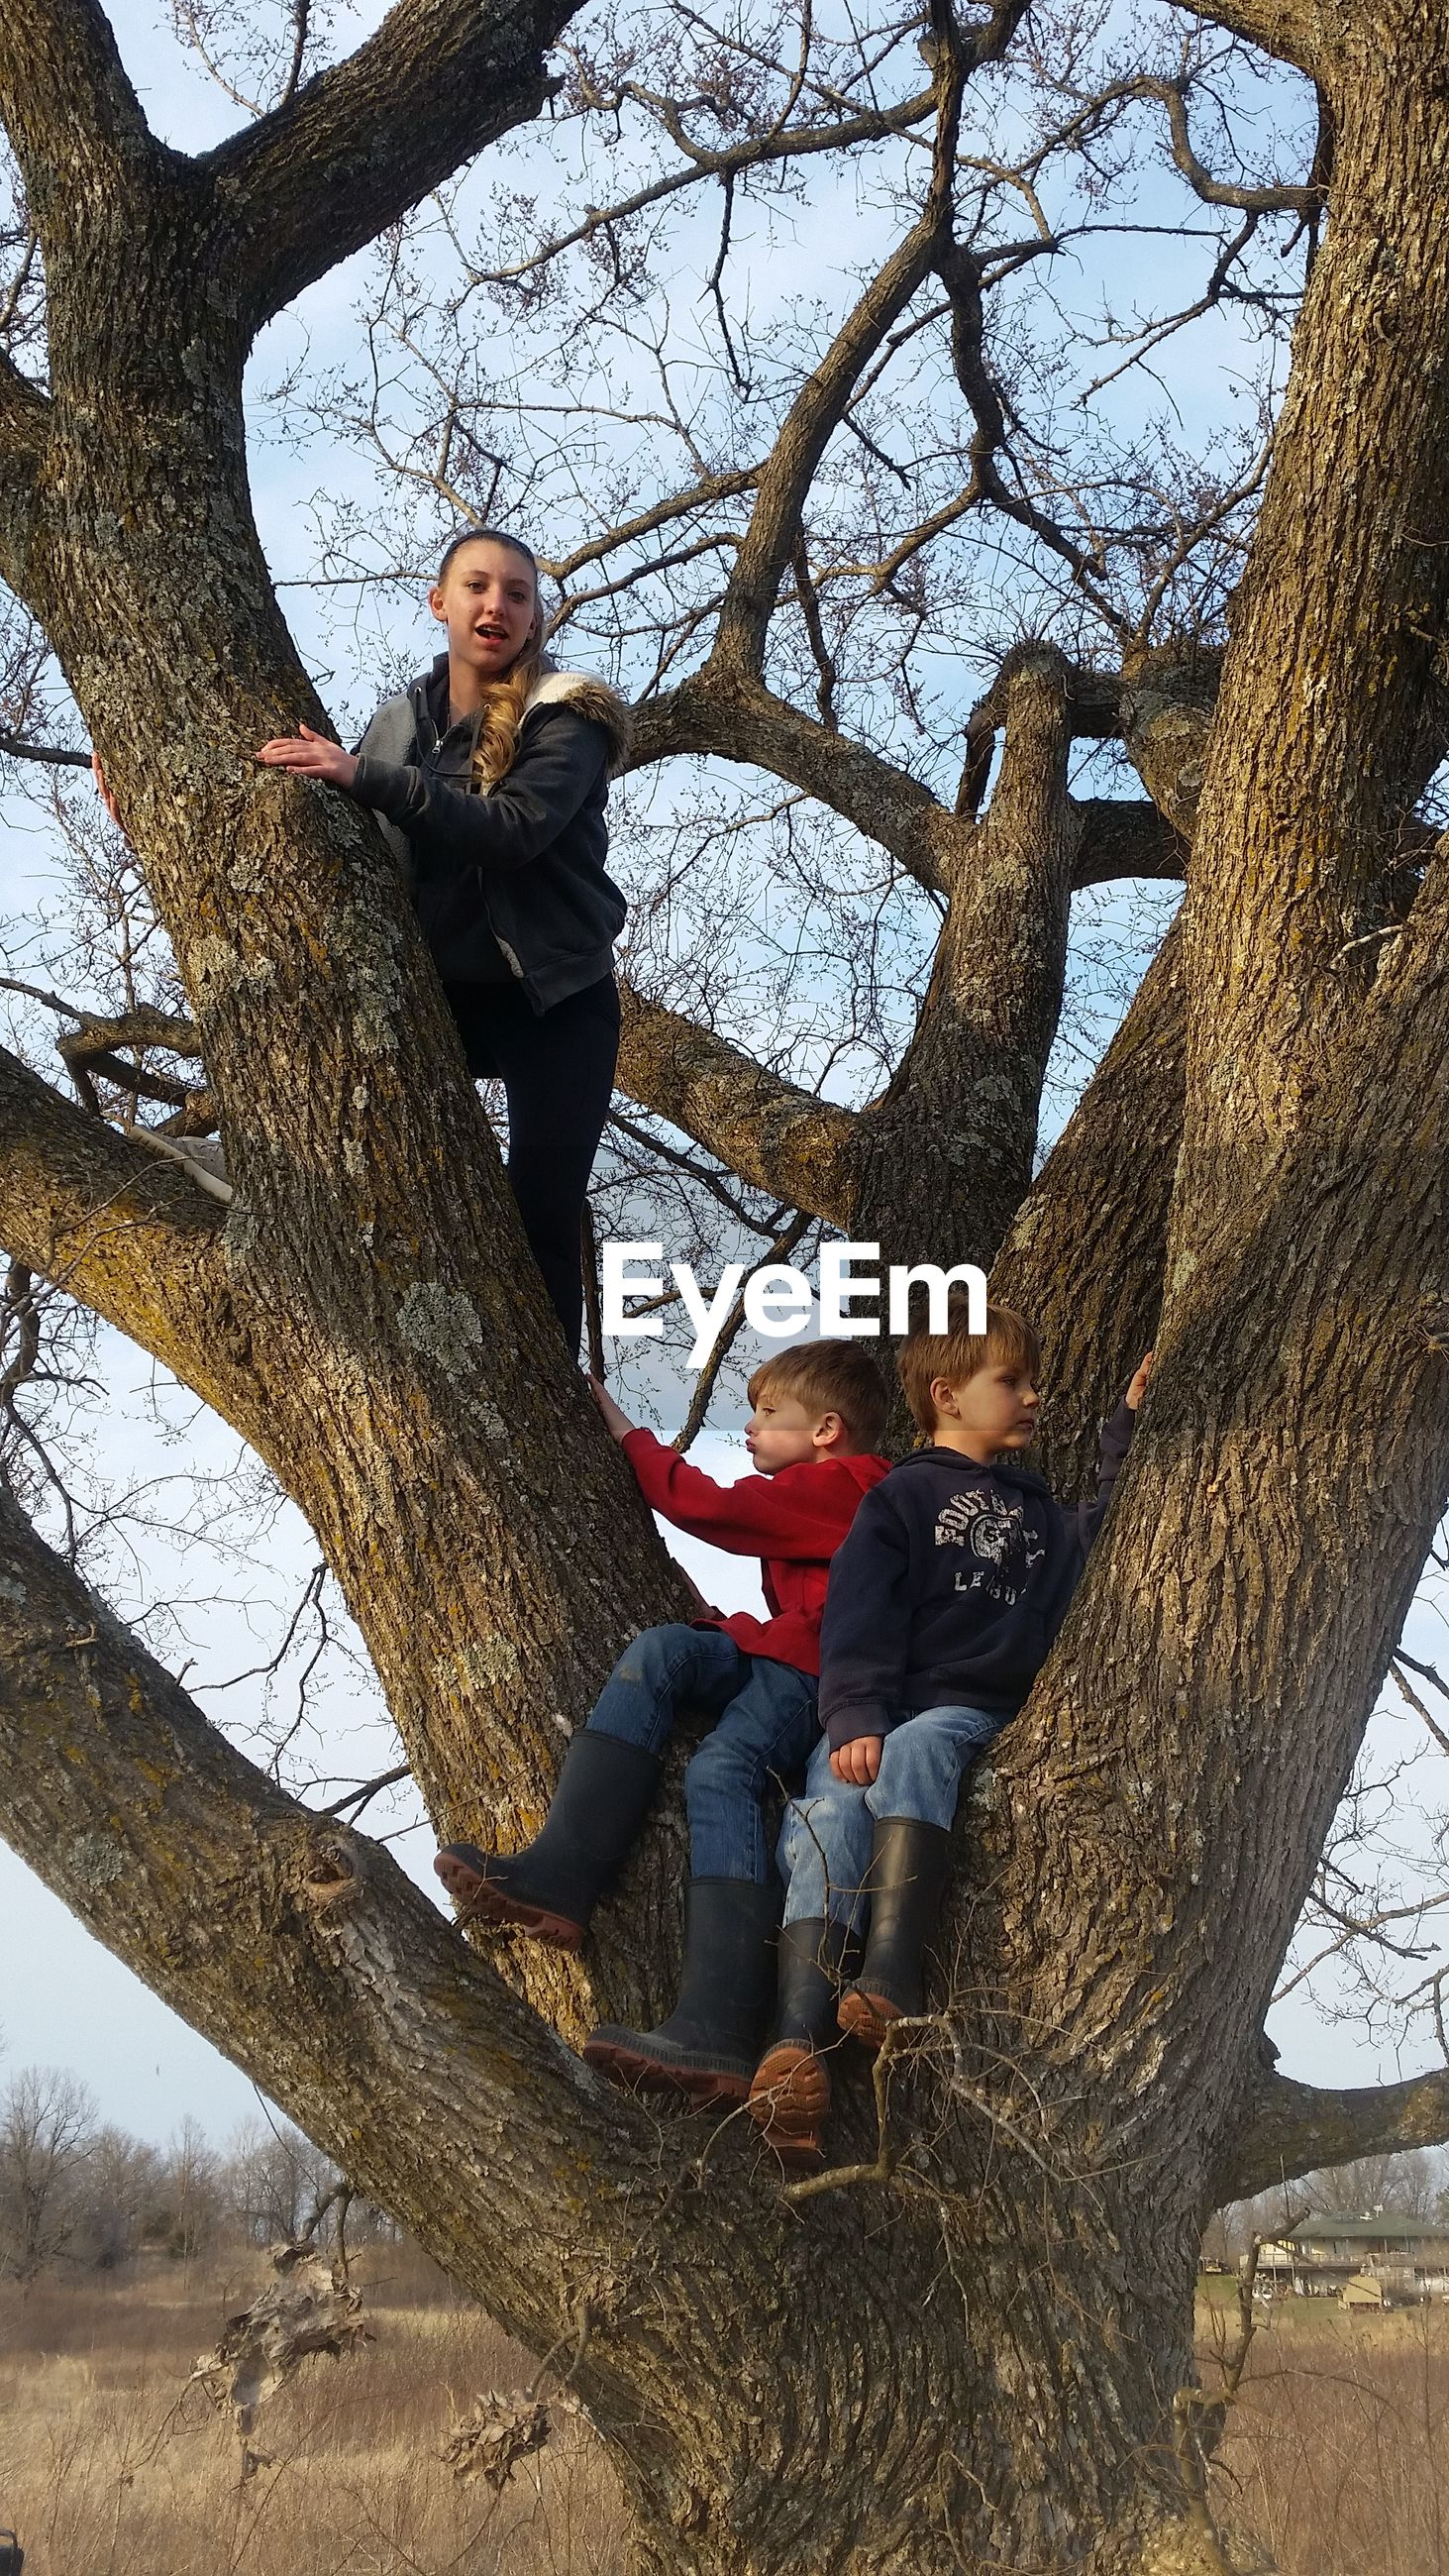 Low angle view of people sitting on tree trunk